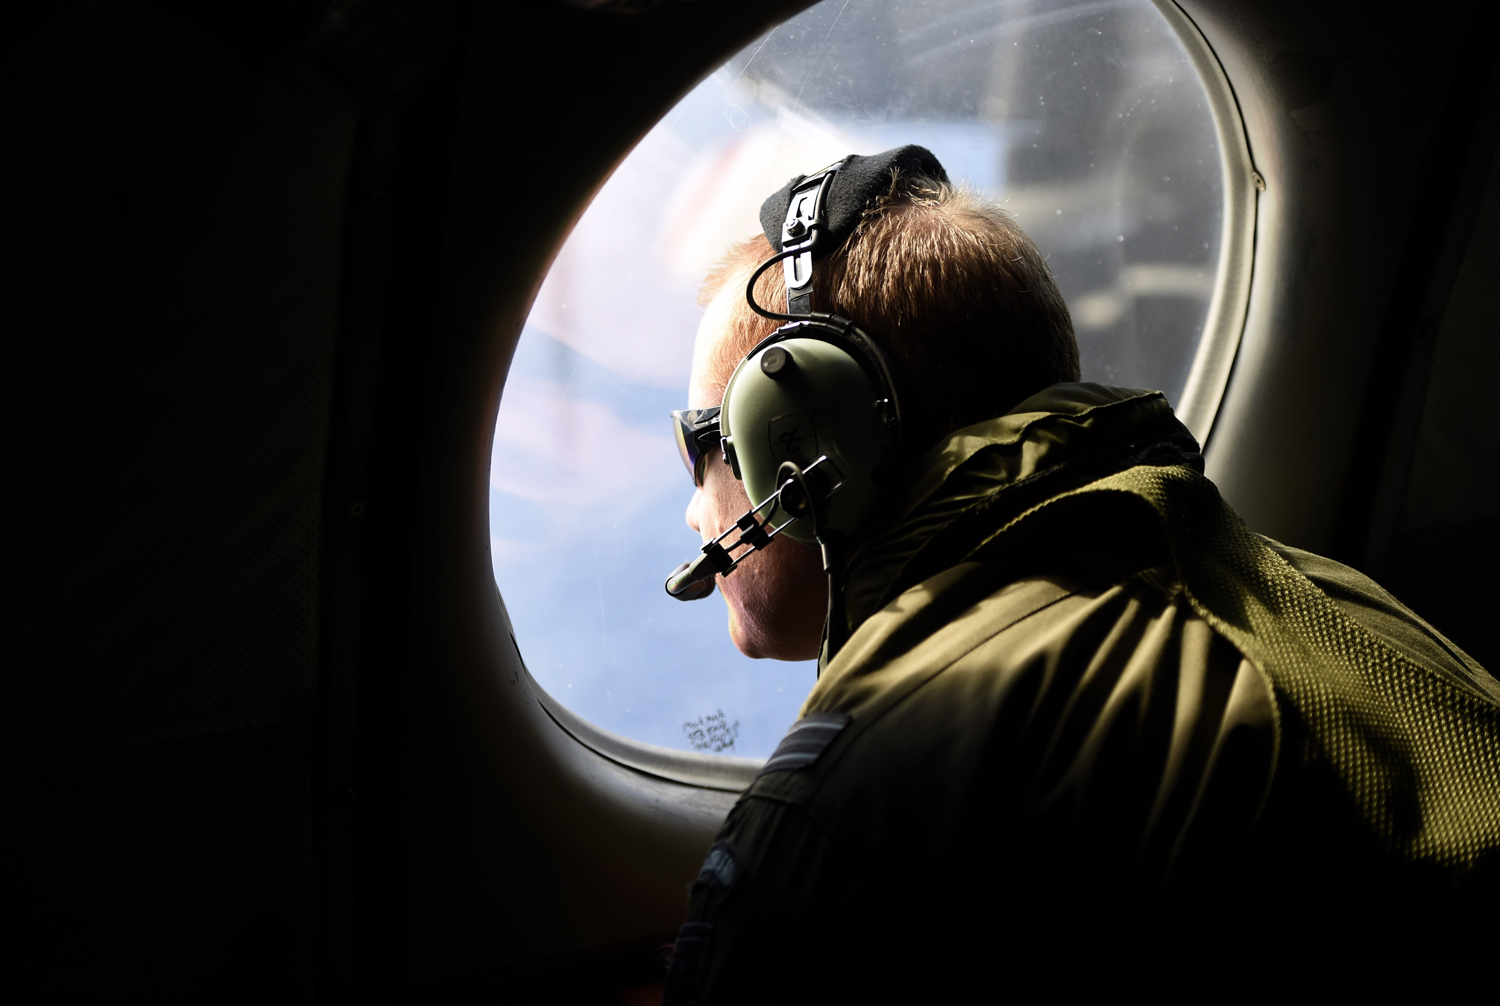 A crew member looks out an observation window aboard a Royal New Zealand Air Force P3 Orion maritime search aircraft as it flies over the southern Indian Ocean looking for debris from missing Malaysian Airlines flight MH 370 on April 11, 2014